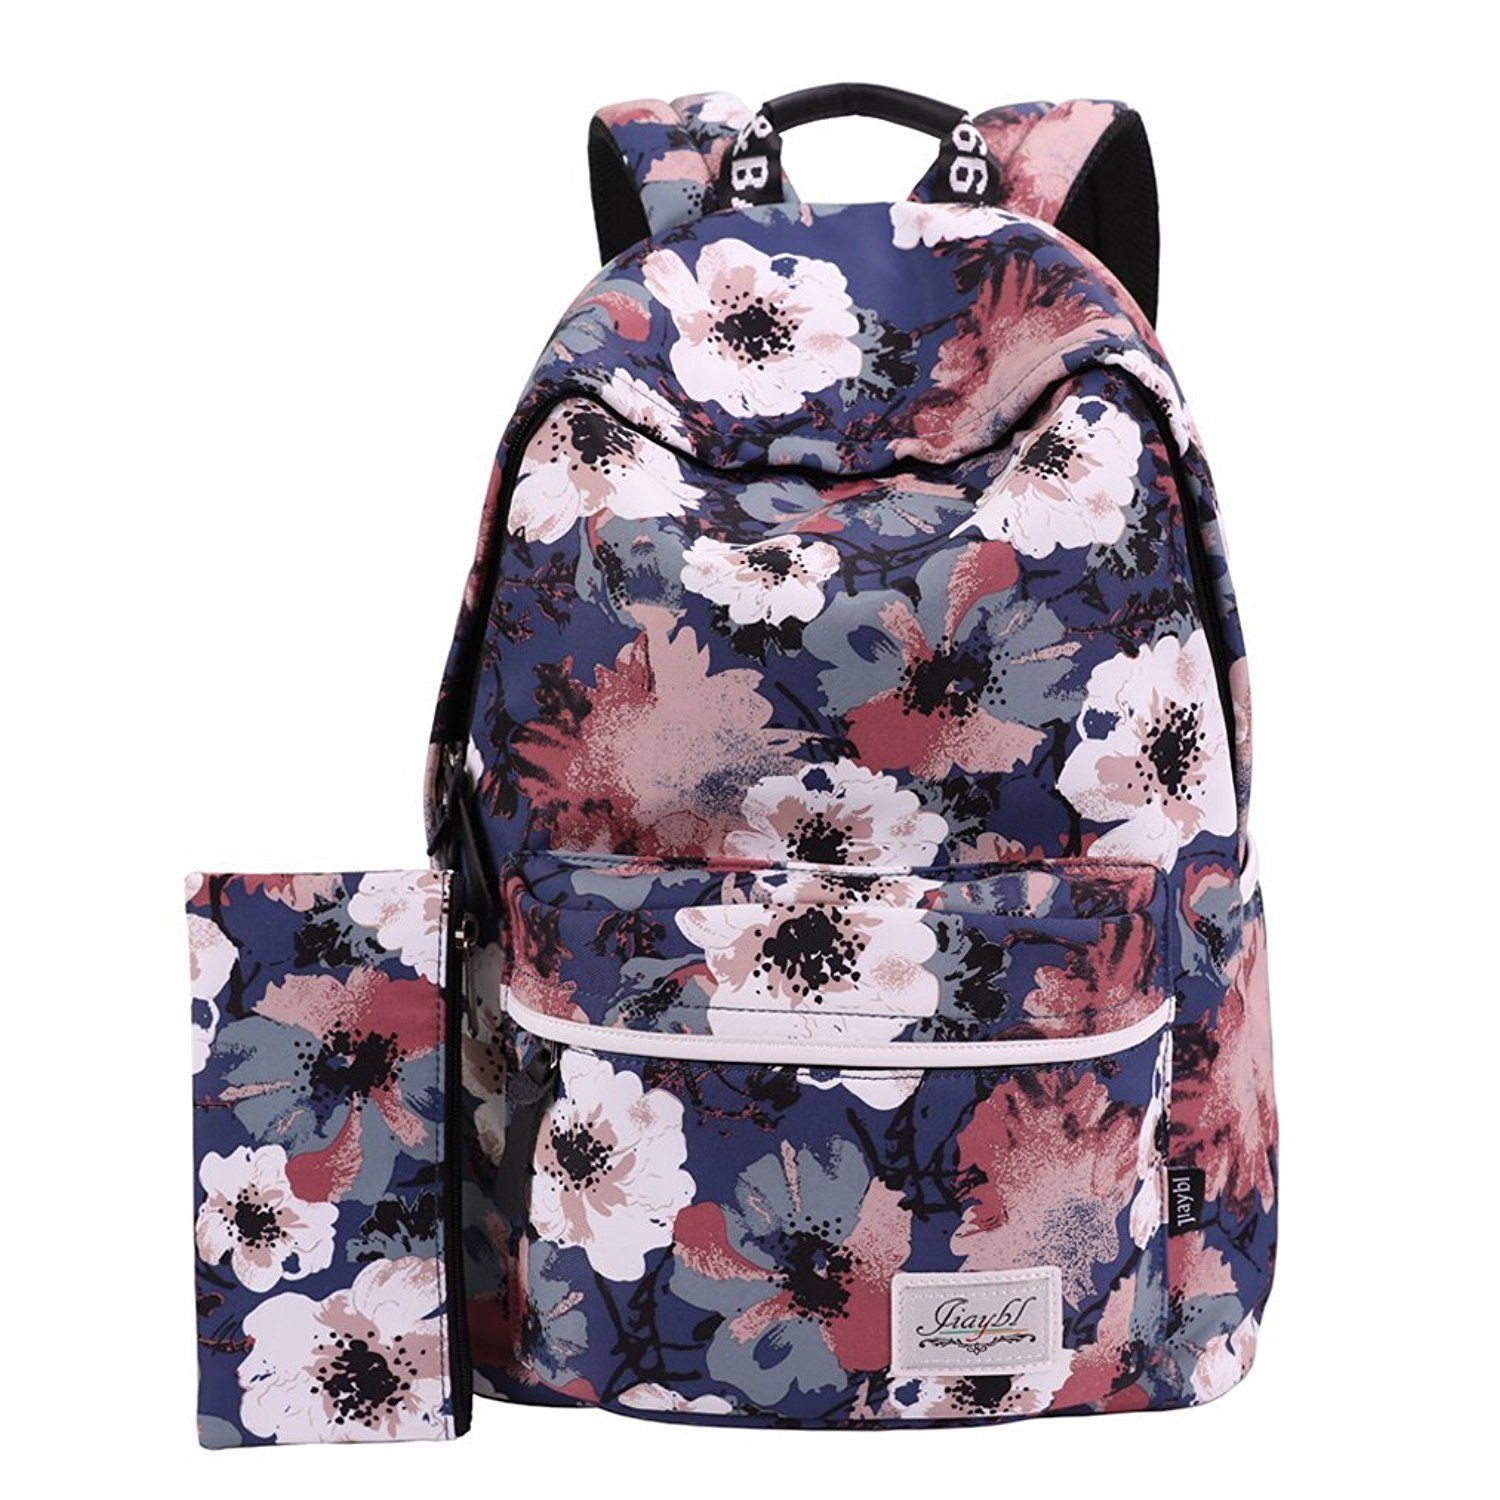 661cbedbd45 Mocha weir JIAYBL Children School Girls Ladies Women Backpack   Read more  reviews of the product by visiting the link on the image.